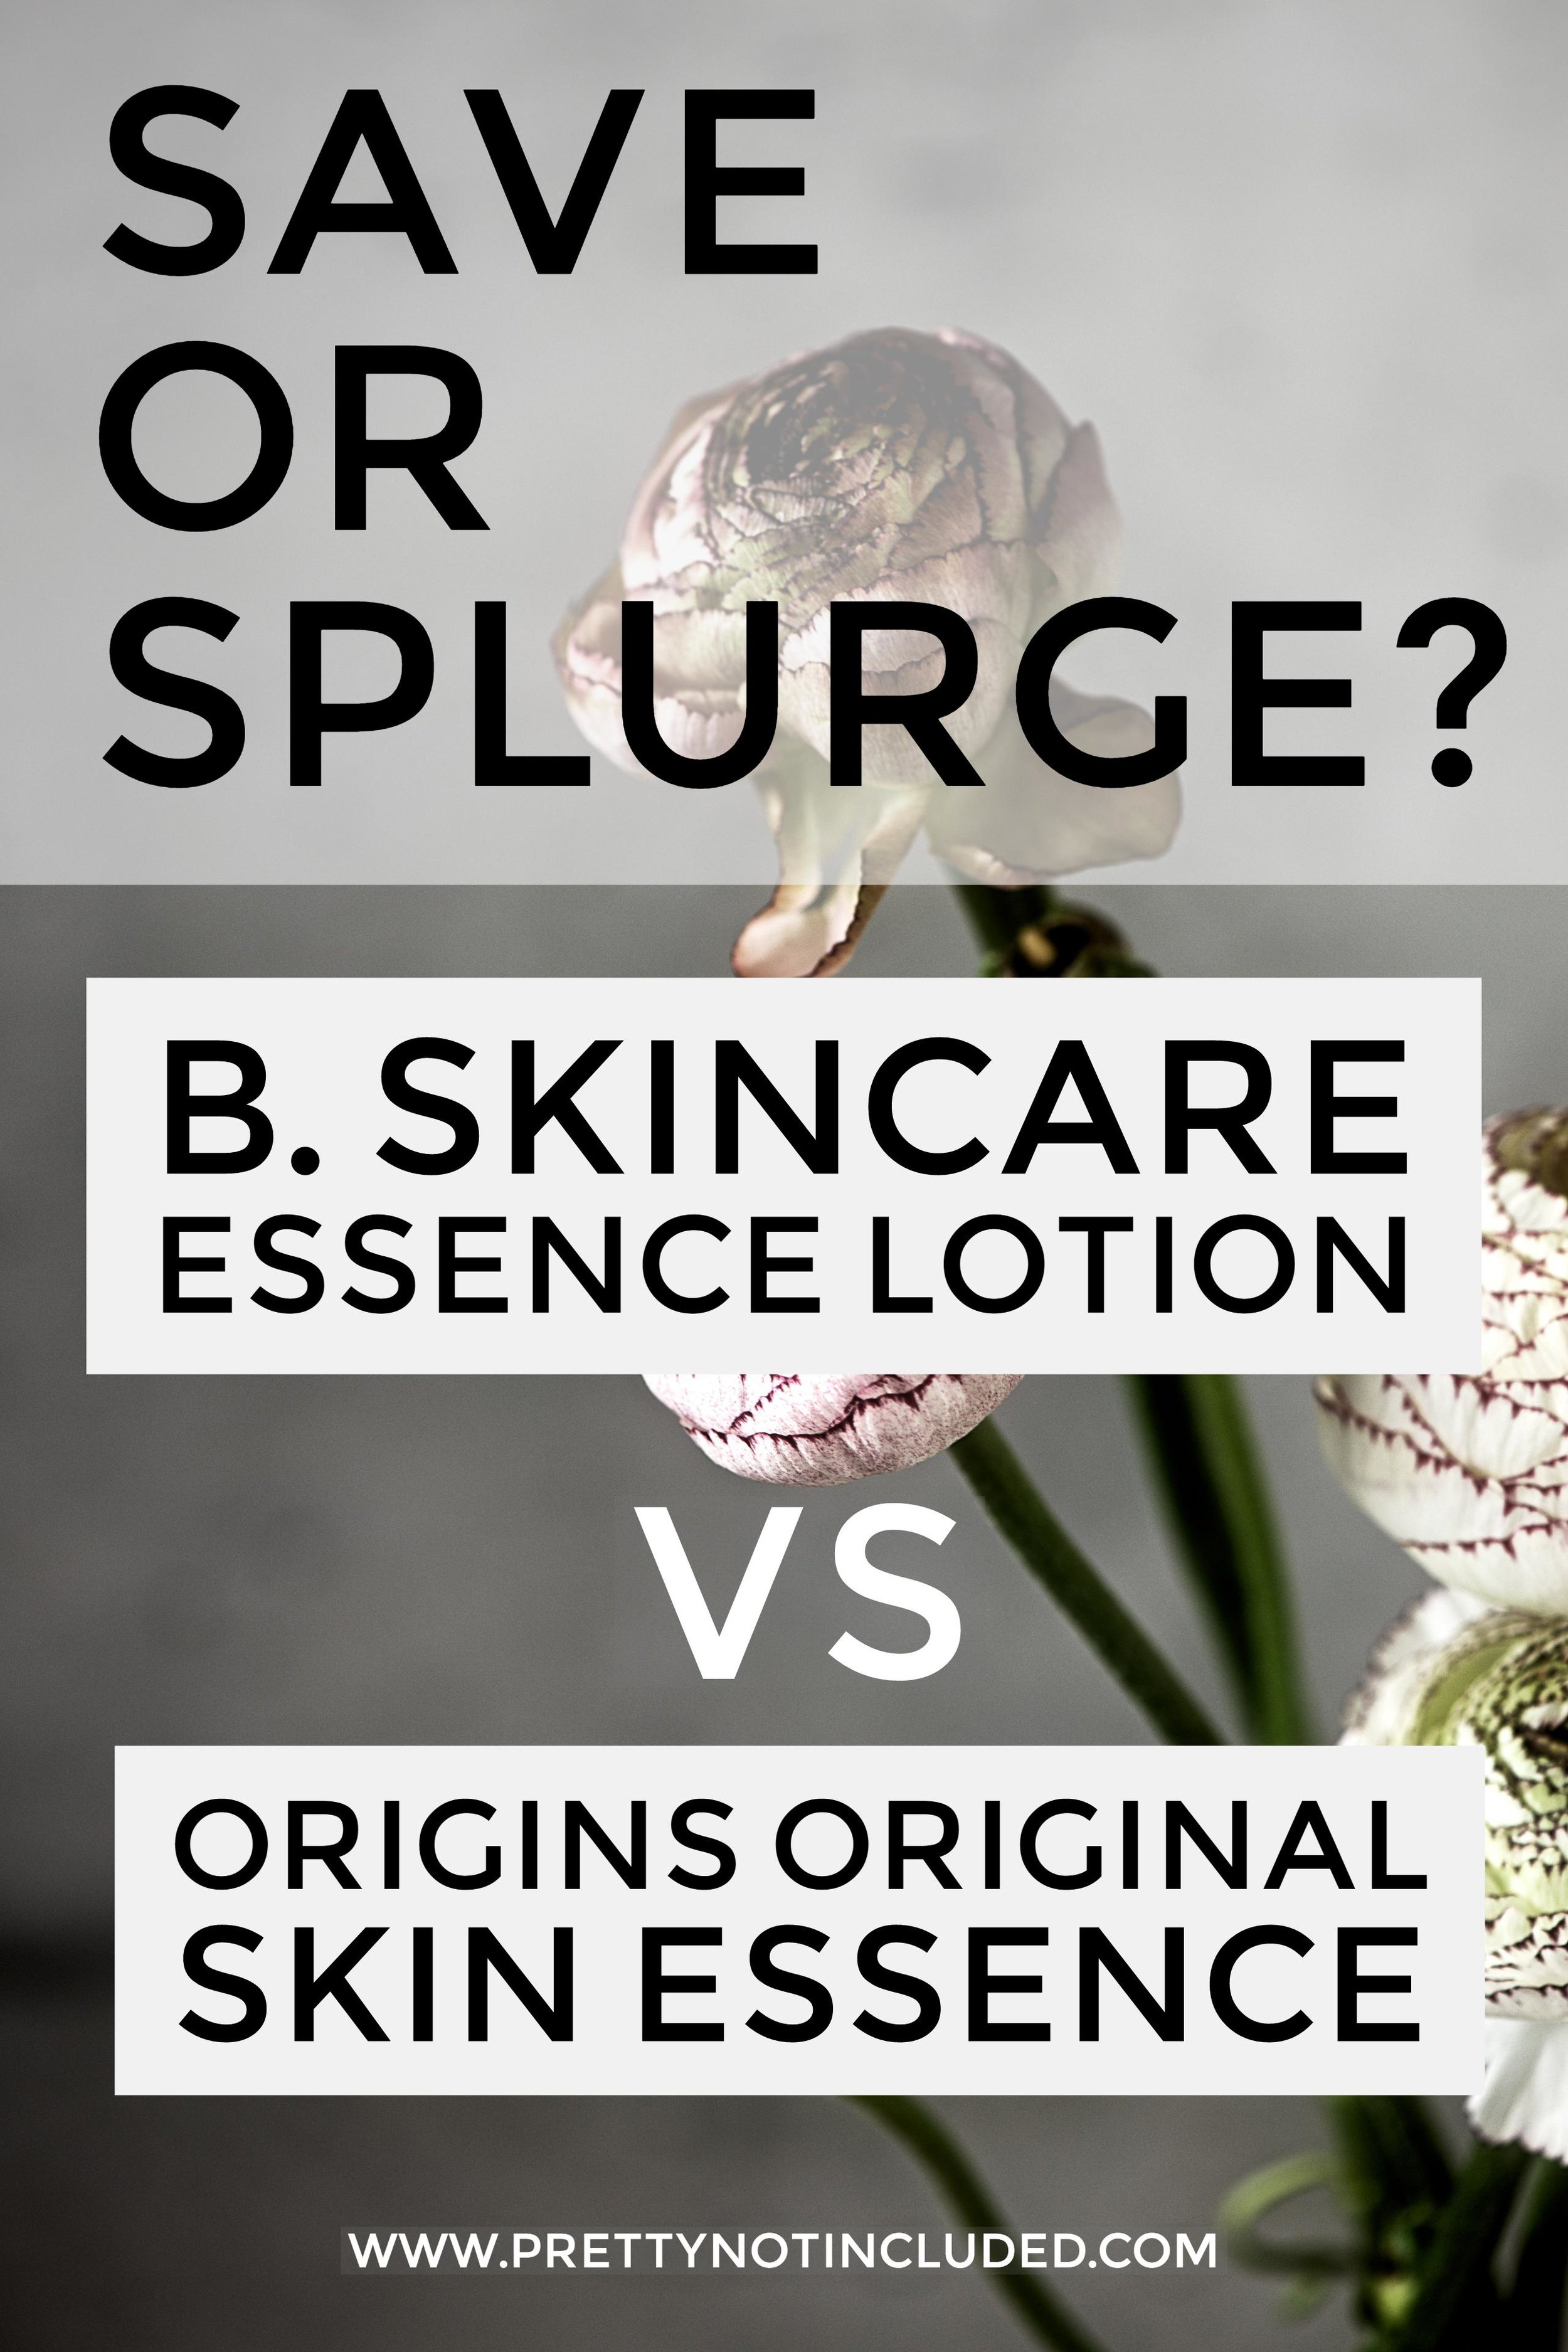 Save or splurge? Comparing the B. Skincare Essence Lotion and Origins Original Skin Essence with dual ferment complex. An essence is considered a vital step to a Korean skincare routine. Are Western brands creating products worthy of standing up to a Korean branded skin essence?